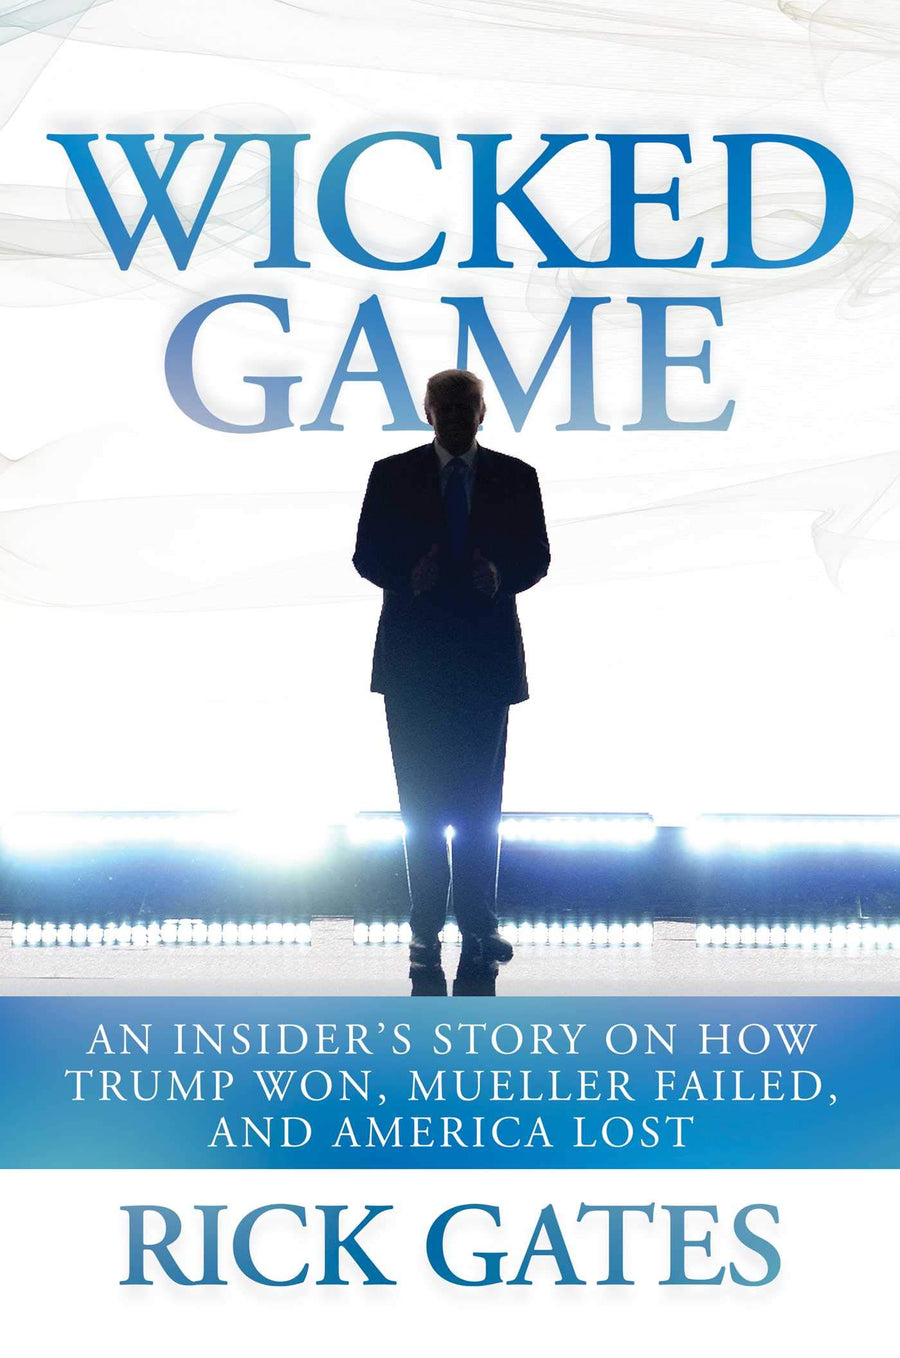 Wicked Game: An Insider's Story on How Trump Won, Mueller Failed, and America Lost - Leadership Books